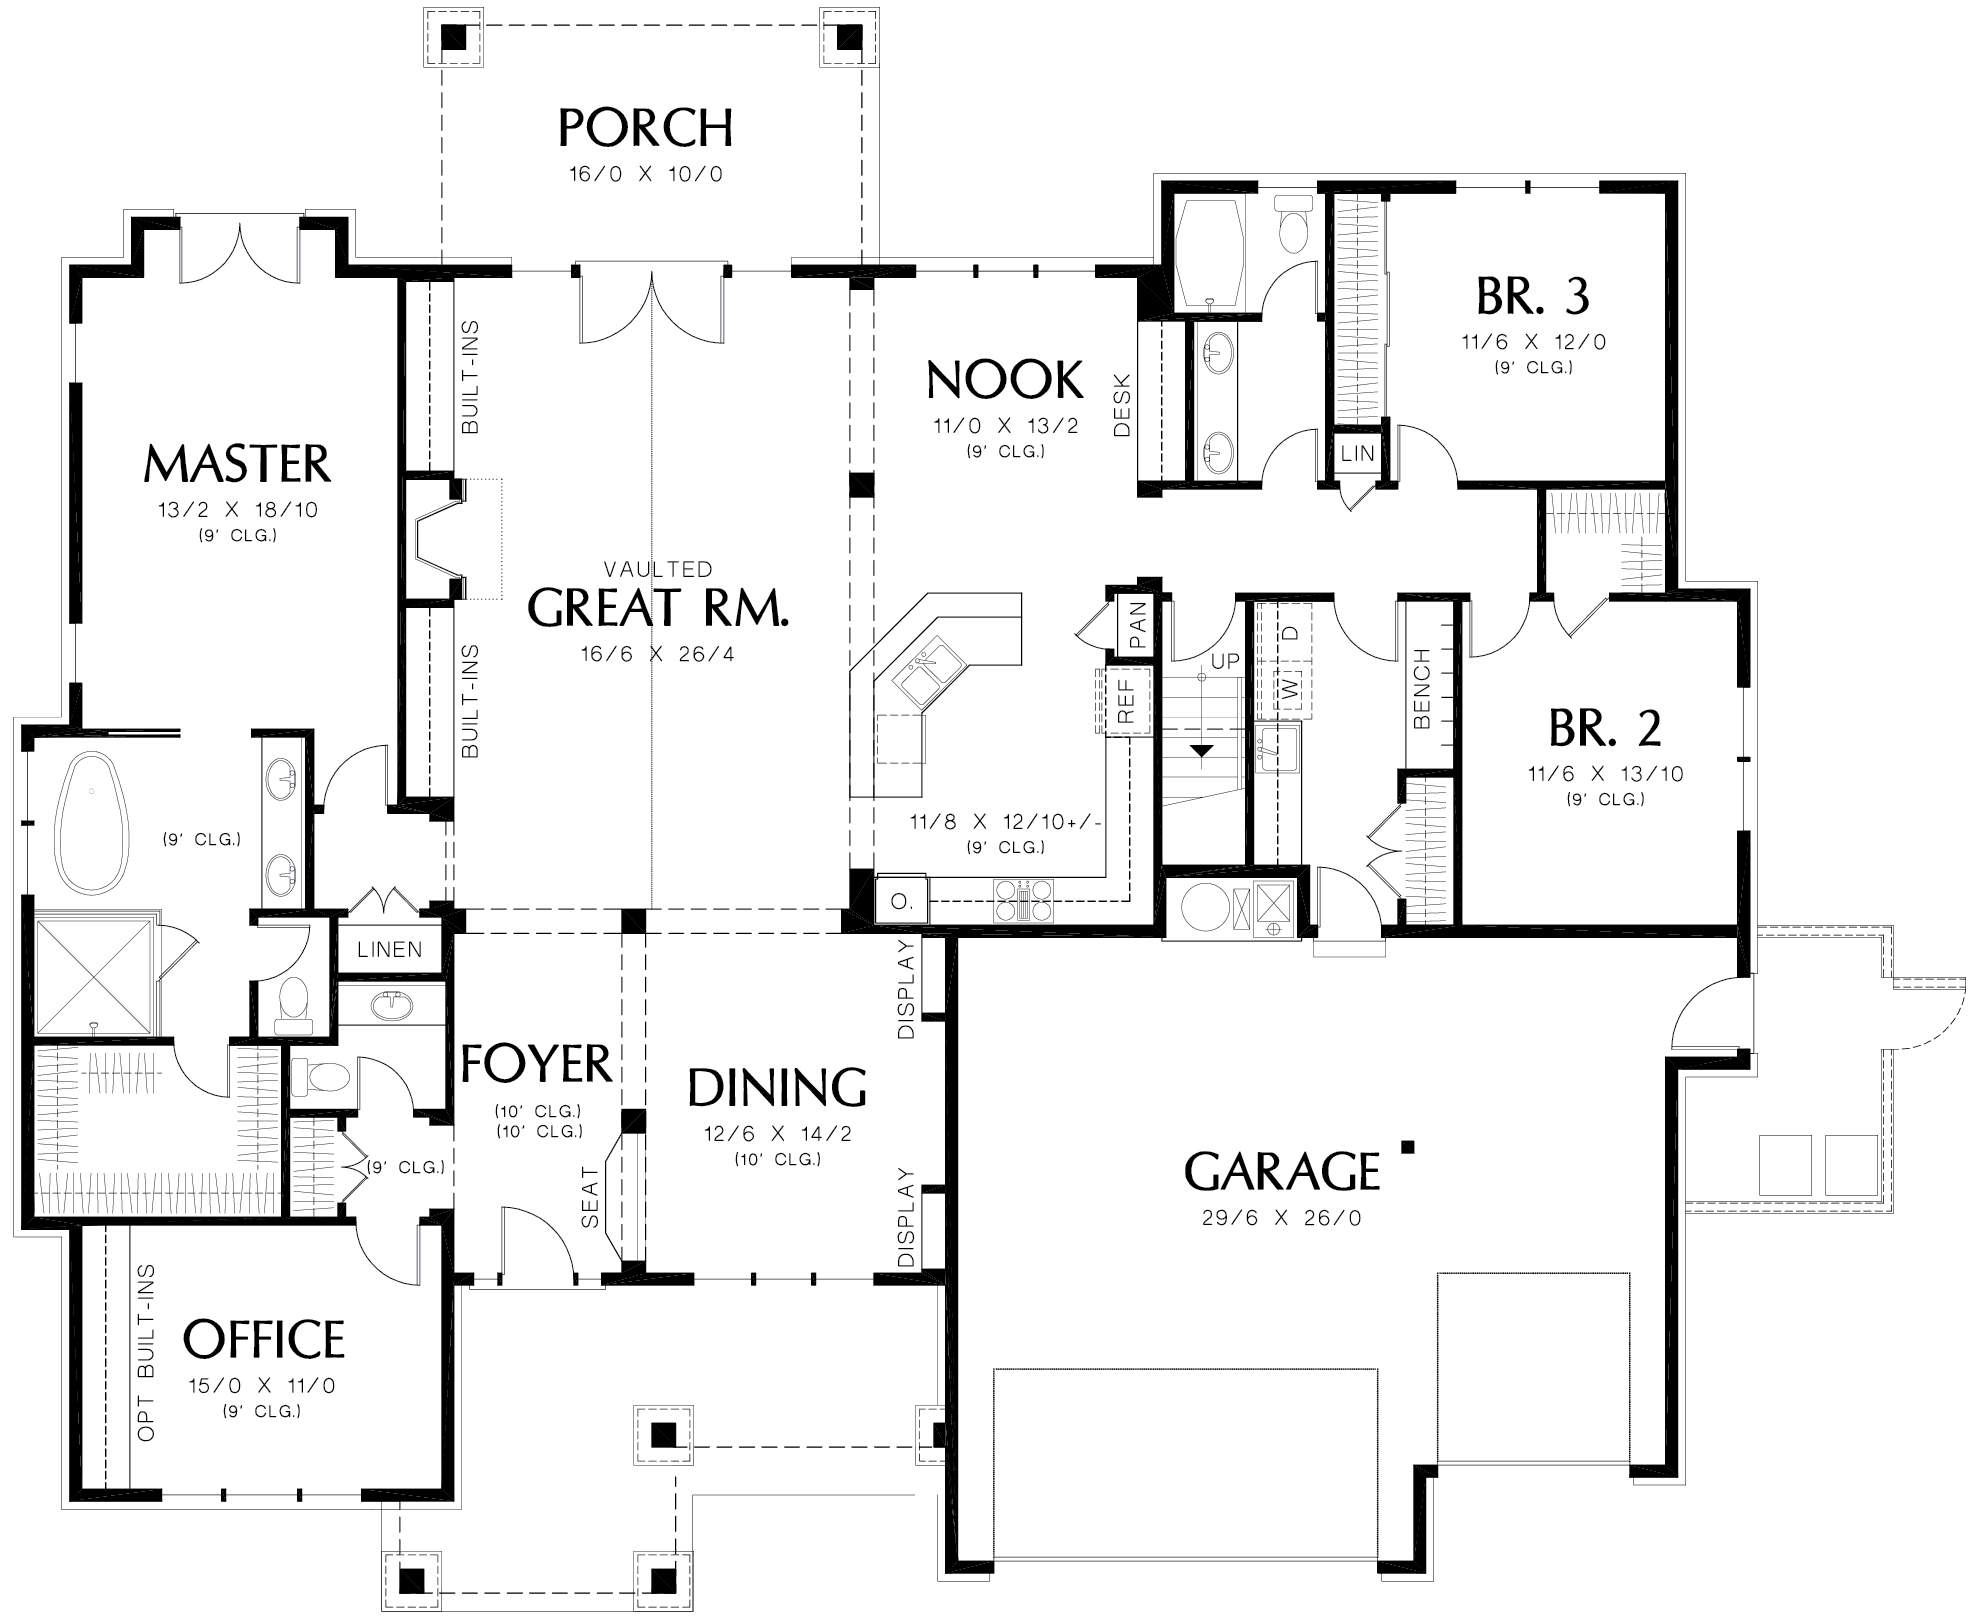 Main level floor plan of a 3-bedroom single-story The Barrington home with a foyer formal dining room, great room that opens to the back porch, kitchen with breakfast nook, three bedrooms, office, and a utility room that leads to the oversized garage.